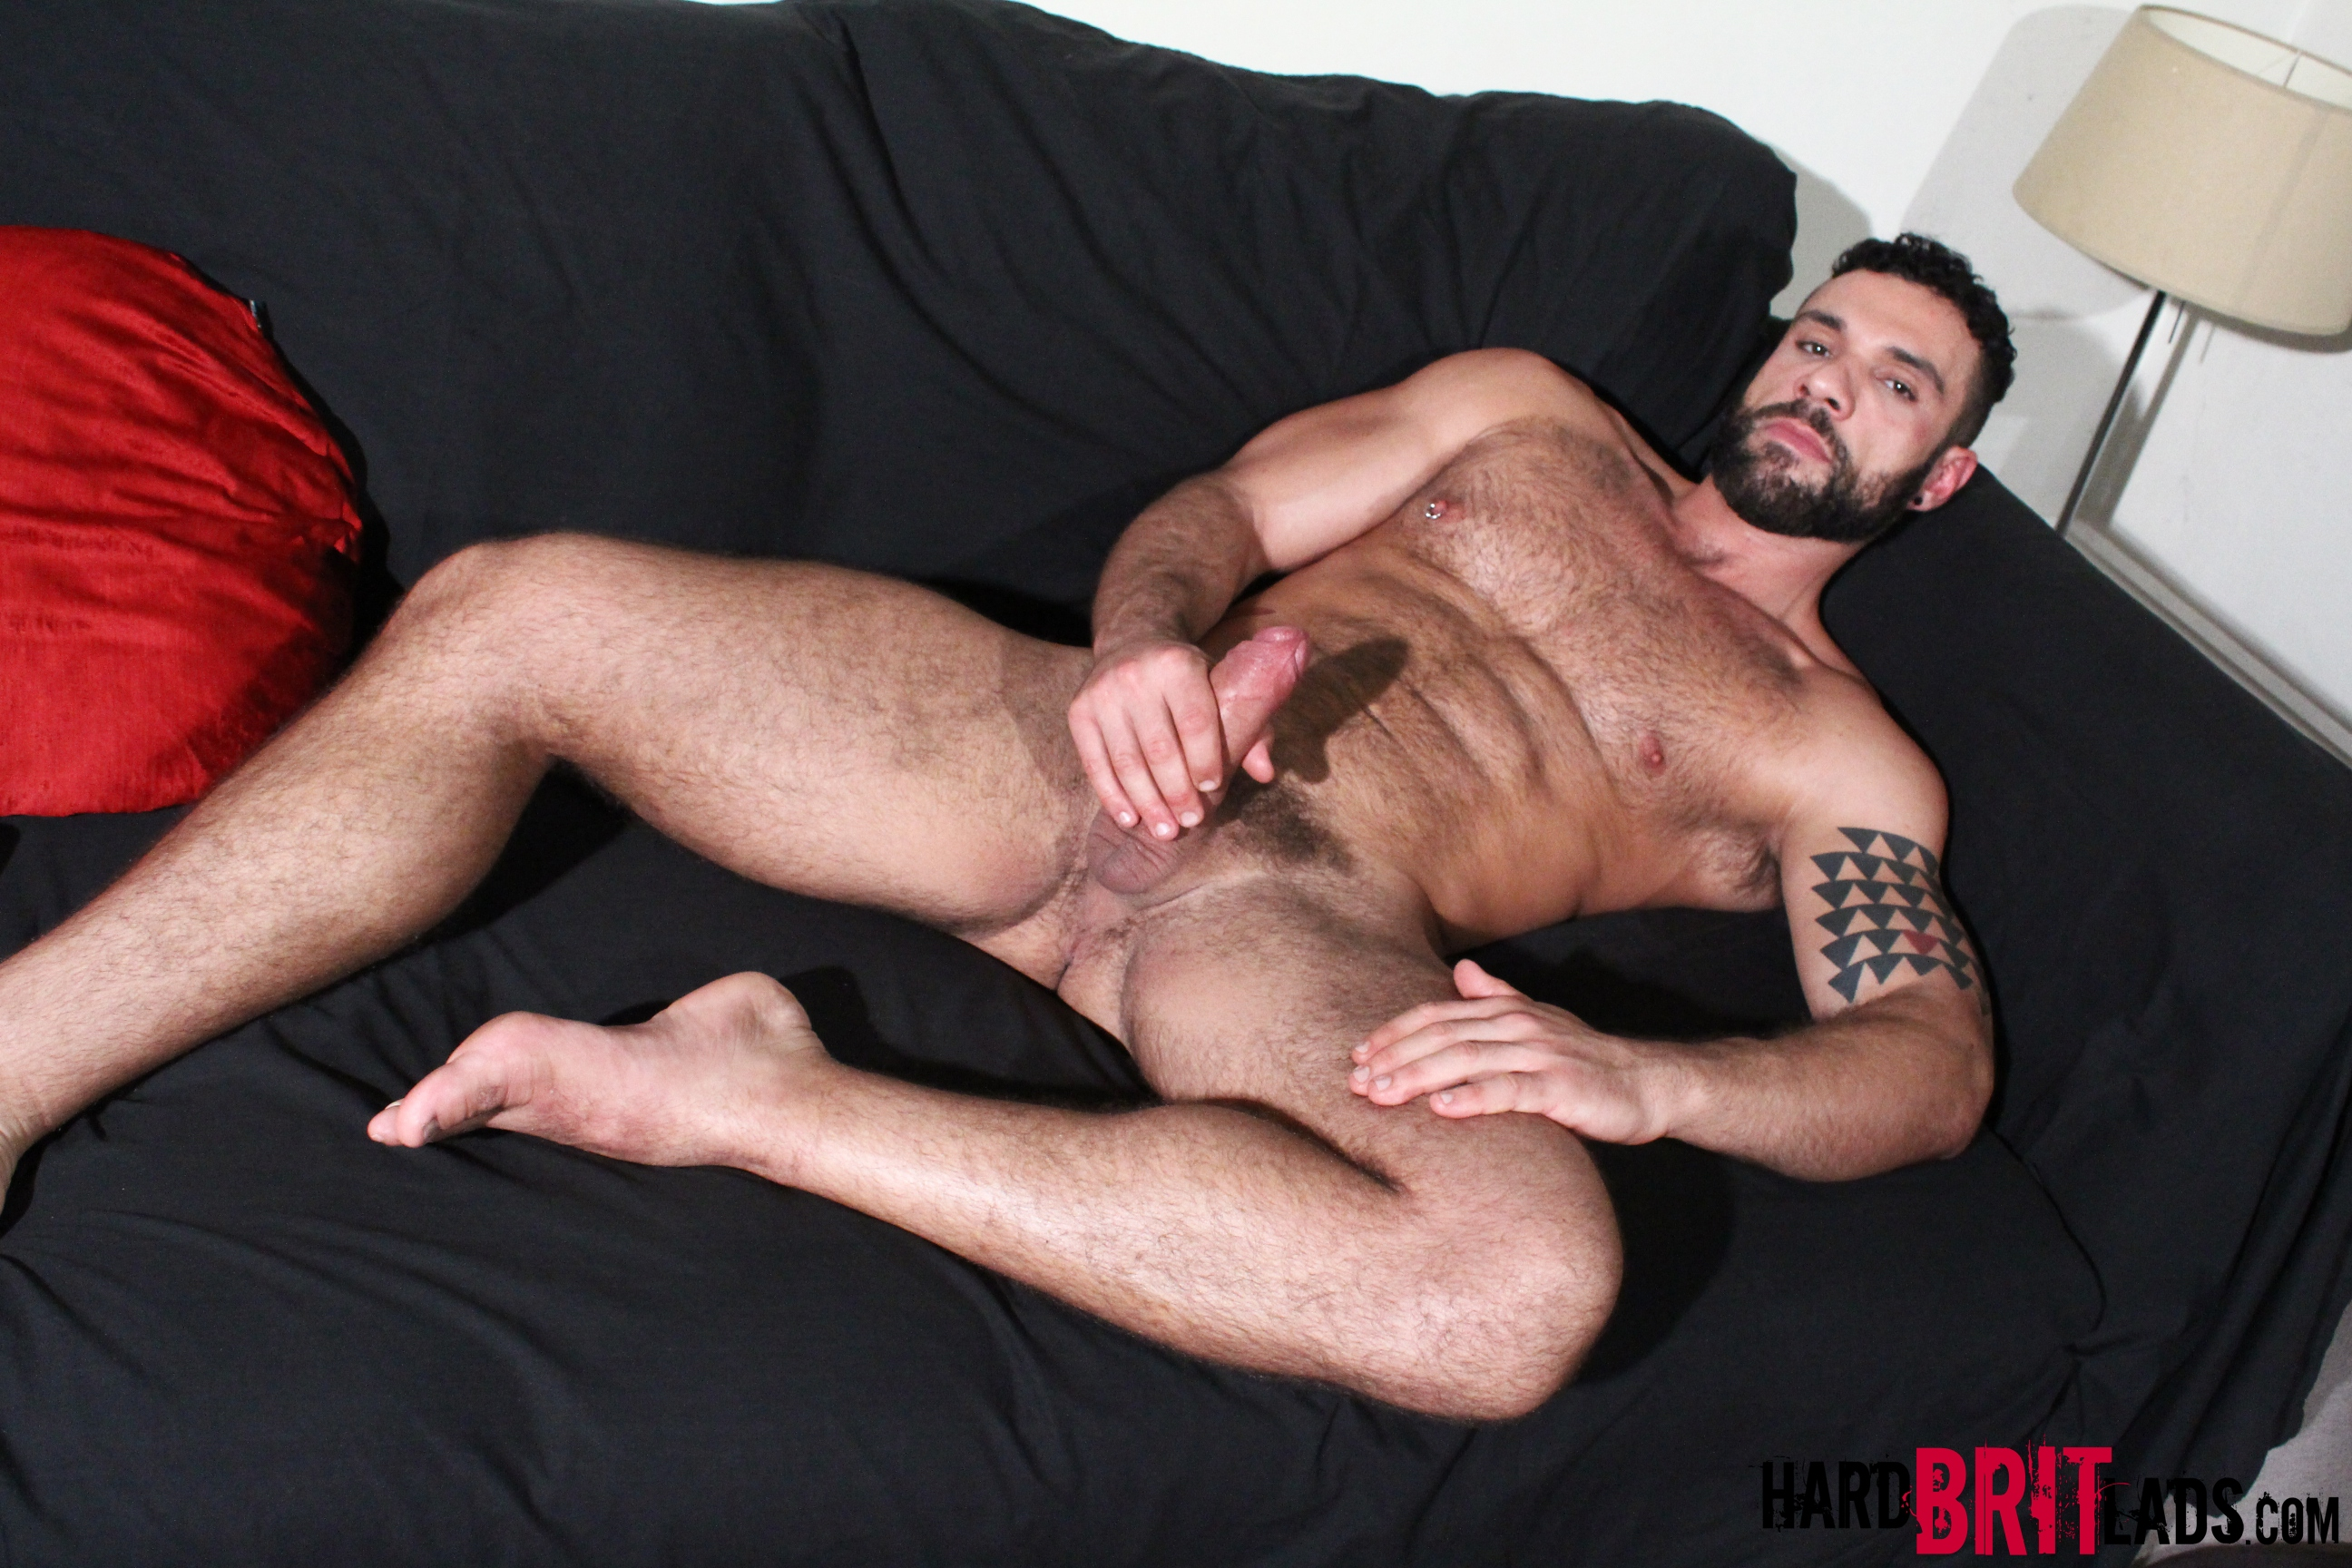 Sexy spanish client wants a different kind of massage - 2 part 3